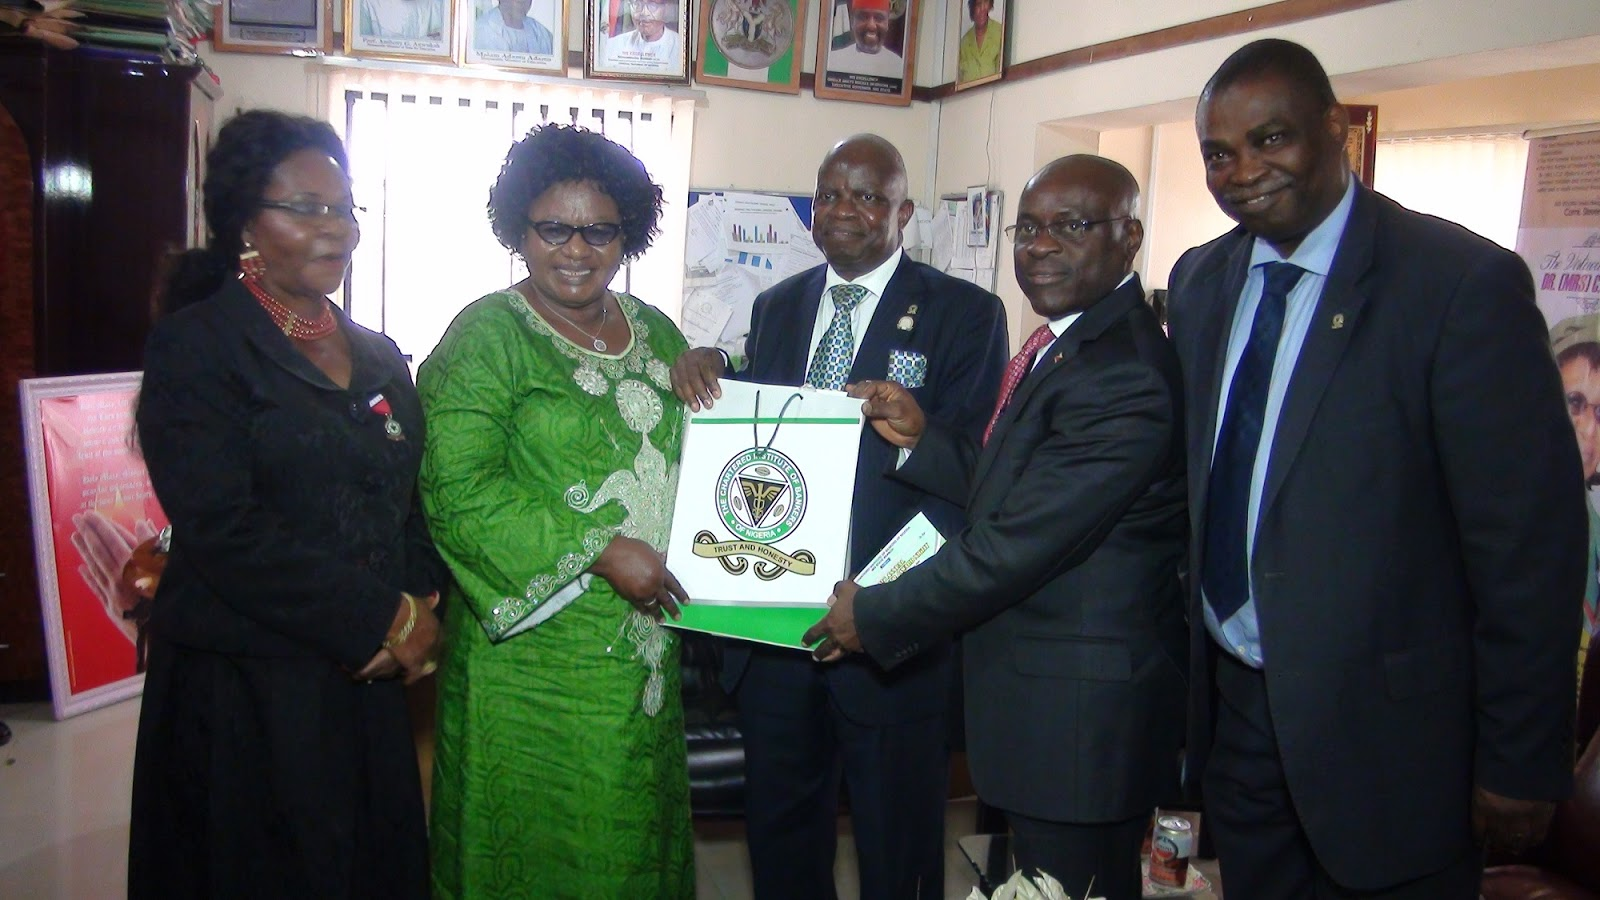 CHARTERED INSTITUTE OF BANKERS OF NIGERIA (CIBN) HONORS DR. (MRS) C. U. NJOKU, RECTOR FEDERAL POLYTECHNIC NEKEDE.